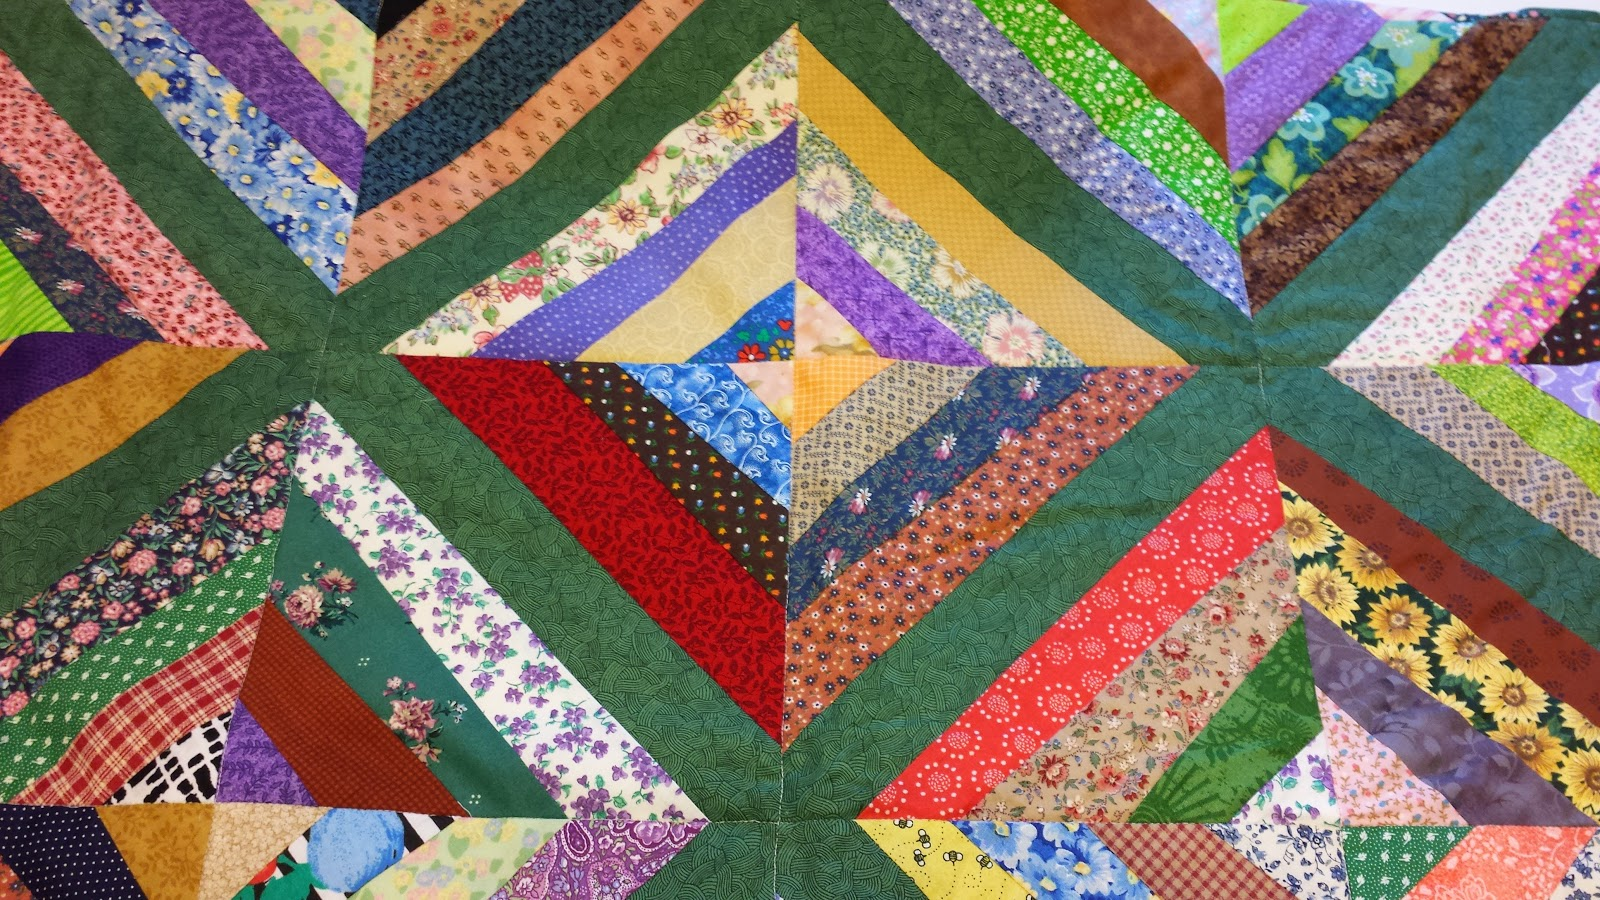 My Patchwork Quilt: HOW TO MAKE A STRING QUILT BLOCK